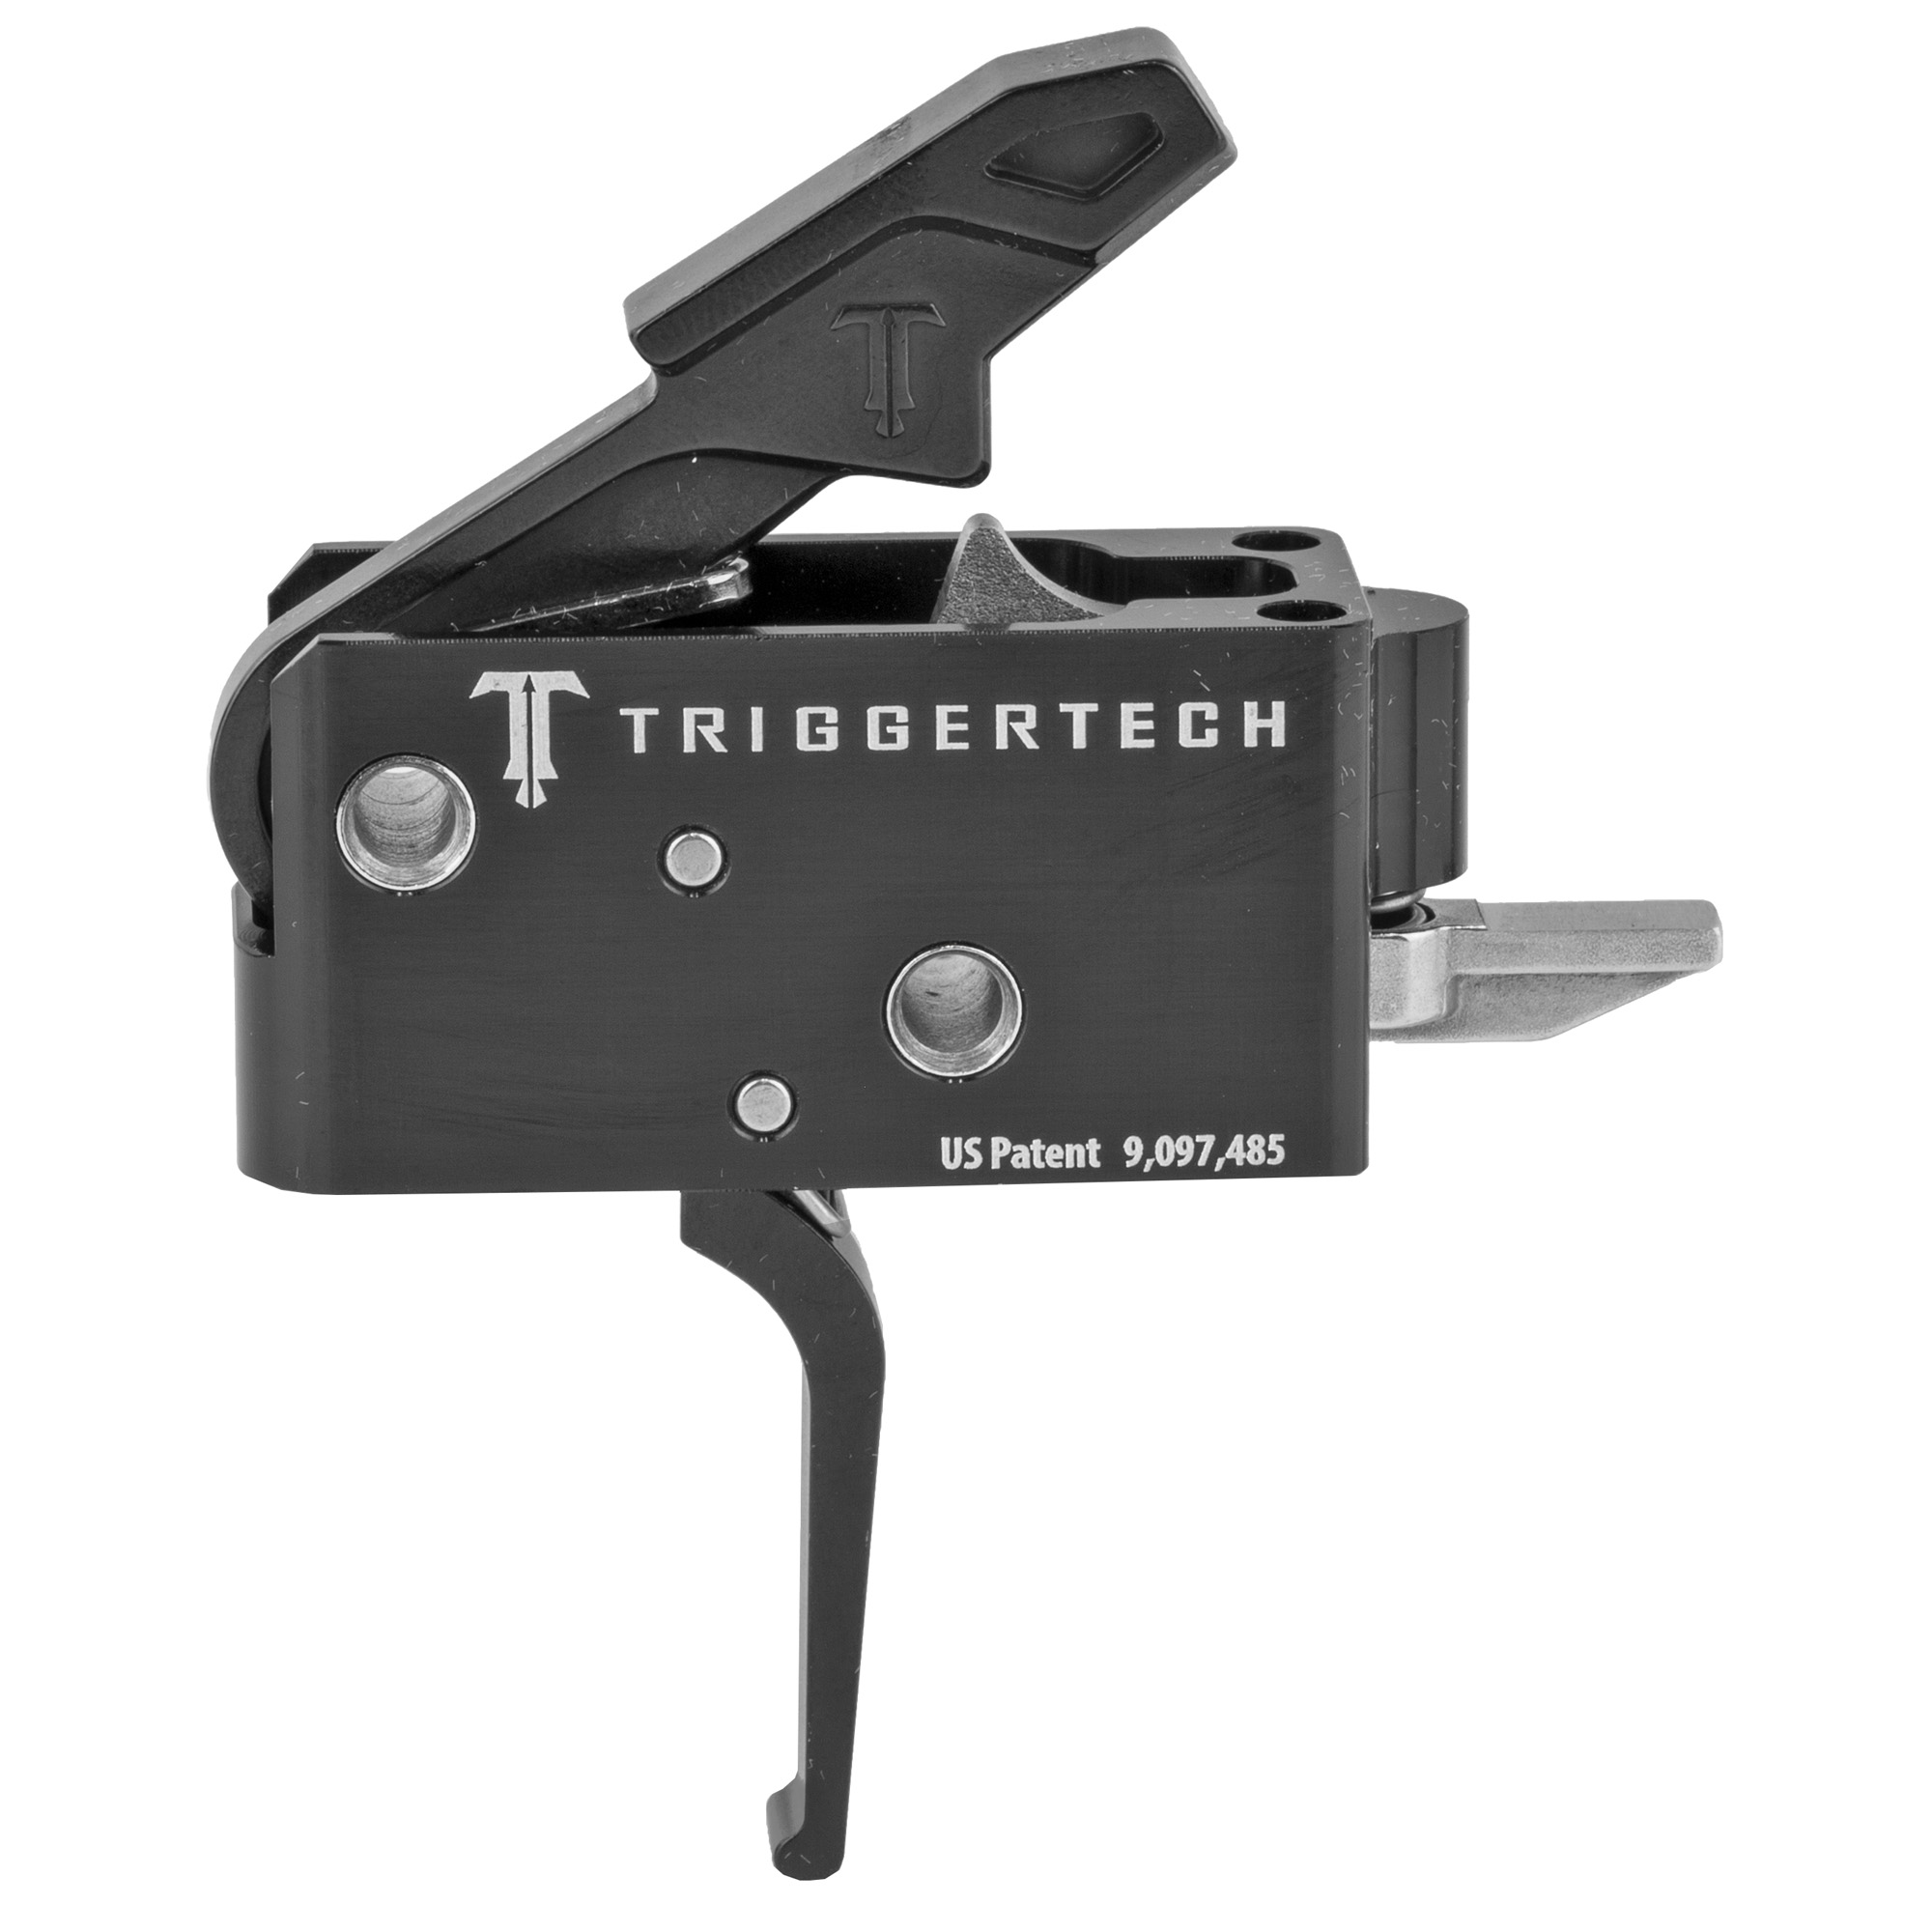 """The Combat AR Primary Trigger is a non-adjustable trigger designed to enhance the accuracy and precision of an AR in demanding roles that require a more forgiving pull weight. Featuring Frictionless Release Technology"""" this drop-in AR trigger has a short"""" two-stage action"""" designed to feel like a 1911 trigger"""" that provides a true zero-creep break"""" extremely short over-travel"""" a sub 0.030"""" tactical reset and offers outstanding reliability"""" even in the harshest environments. The pull weight is fixed at 5.5 lbs. and due to there being truly zero creep"""" most shooters report the pull weights feeling 0.5lbs lighter than a friction based trigger of the same measured pull weight."""